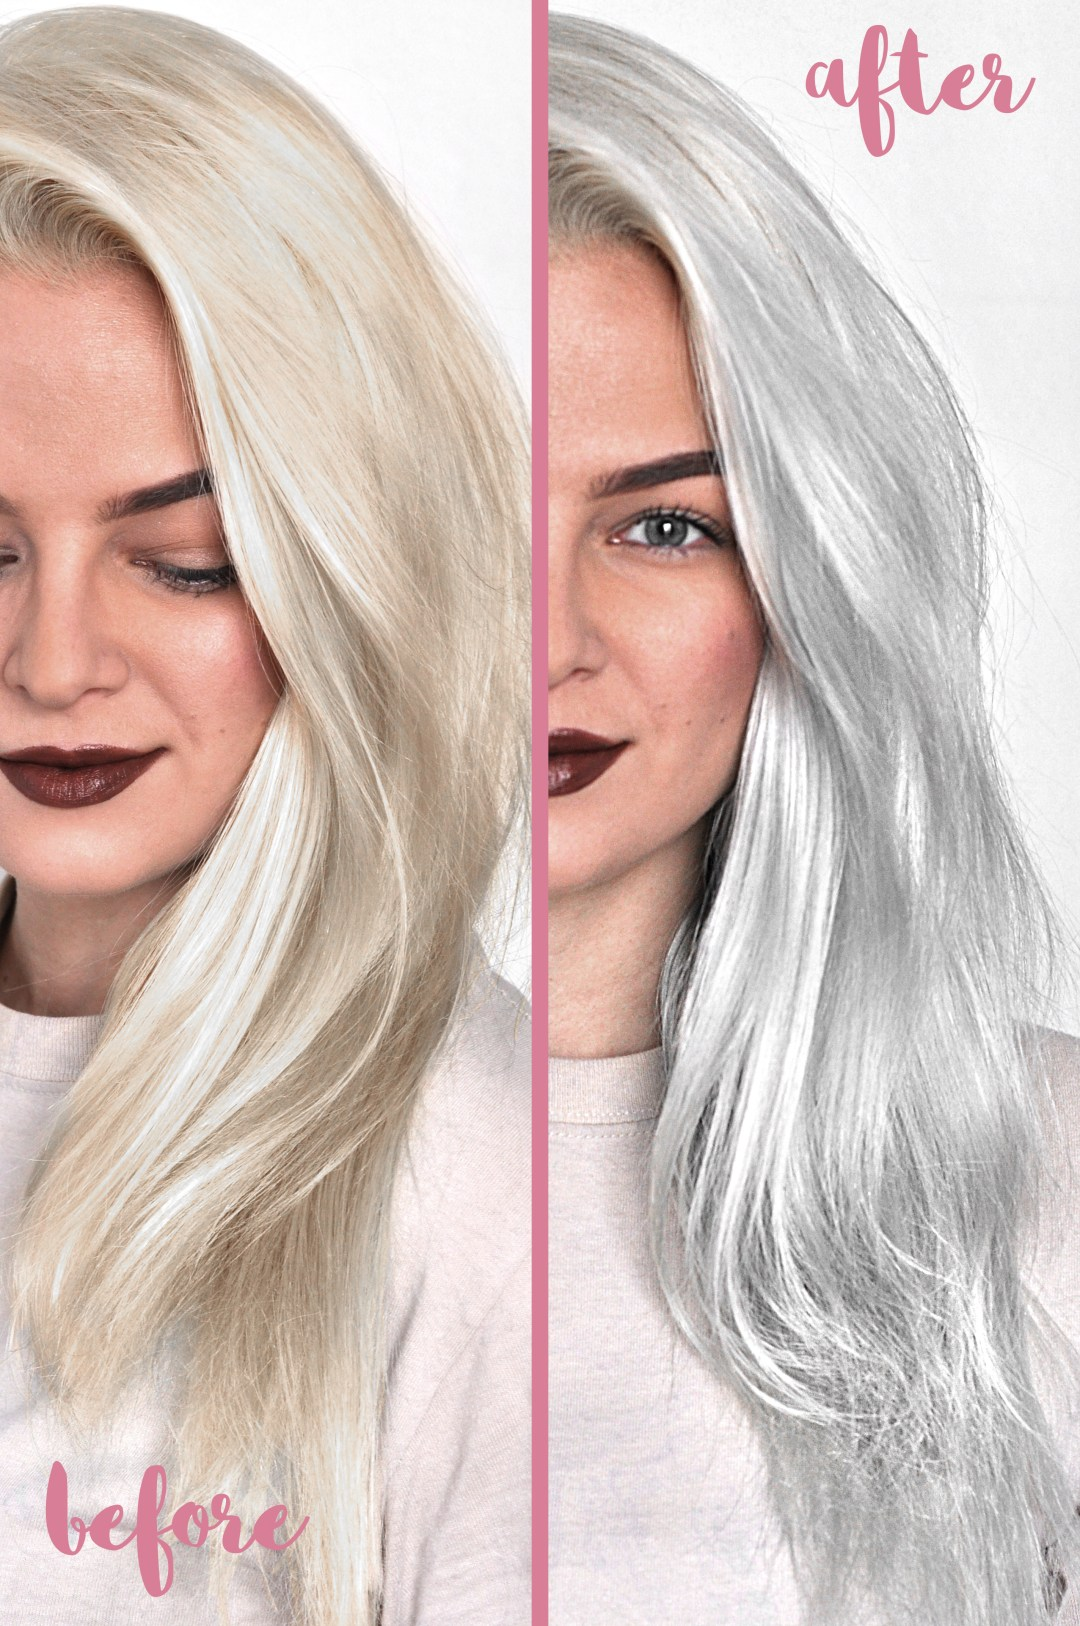 Top 5 Best Sulfate Free Purple Shampoos To Tone Blonde Hair Mayalamode